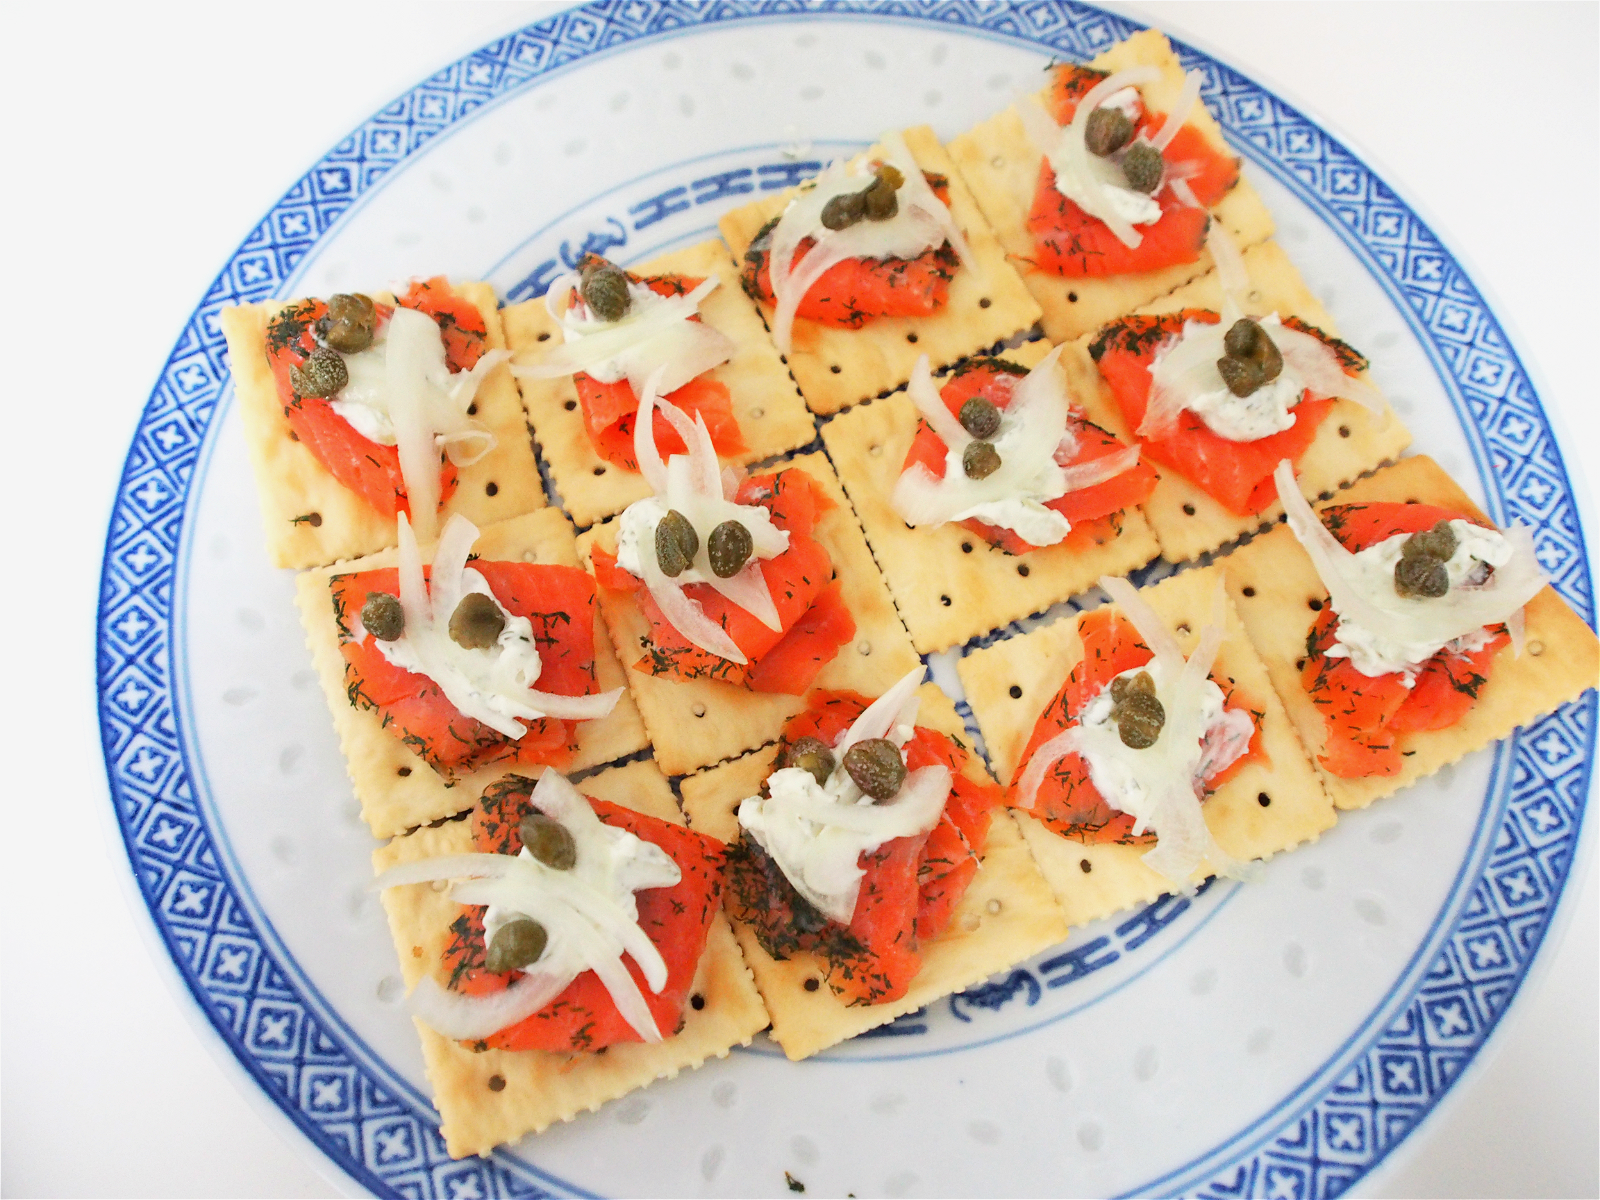 How to make canap my canap recipes imchacha travel for How to make a canape